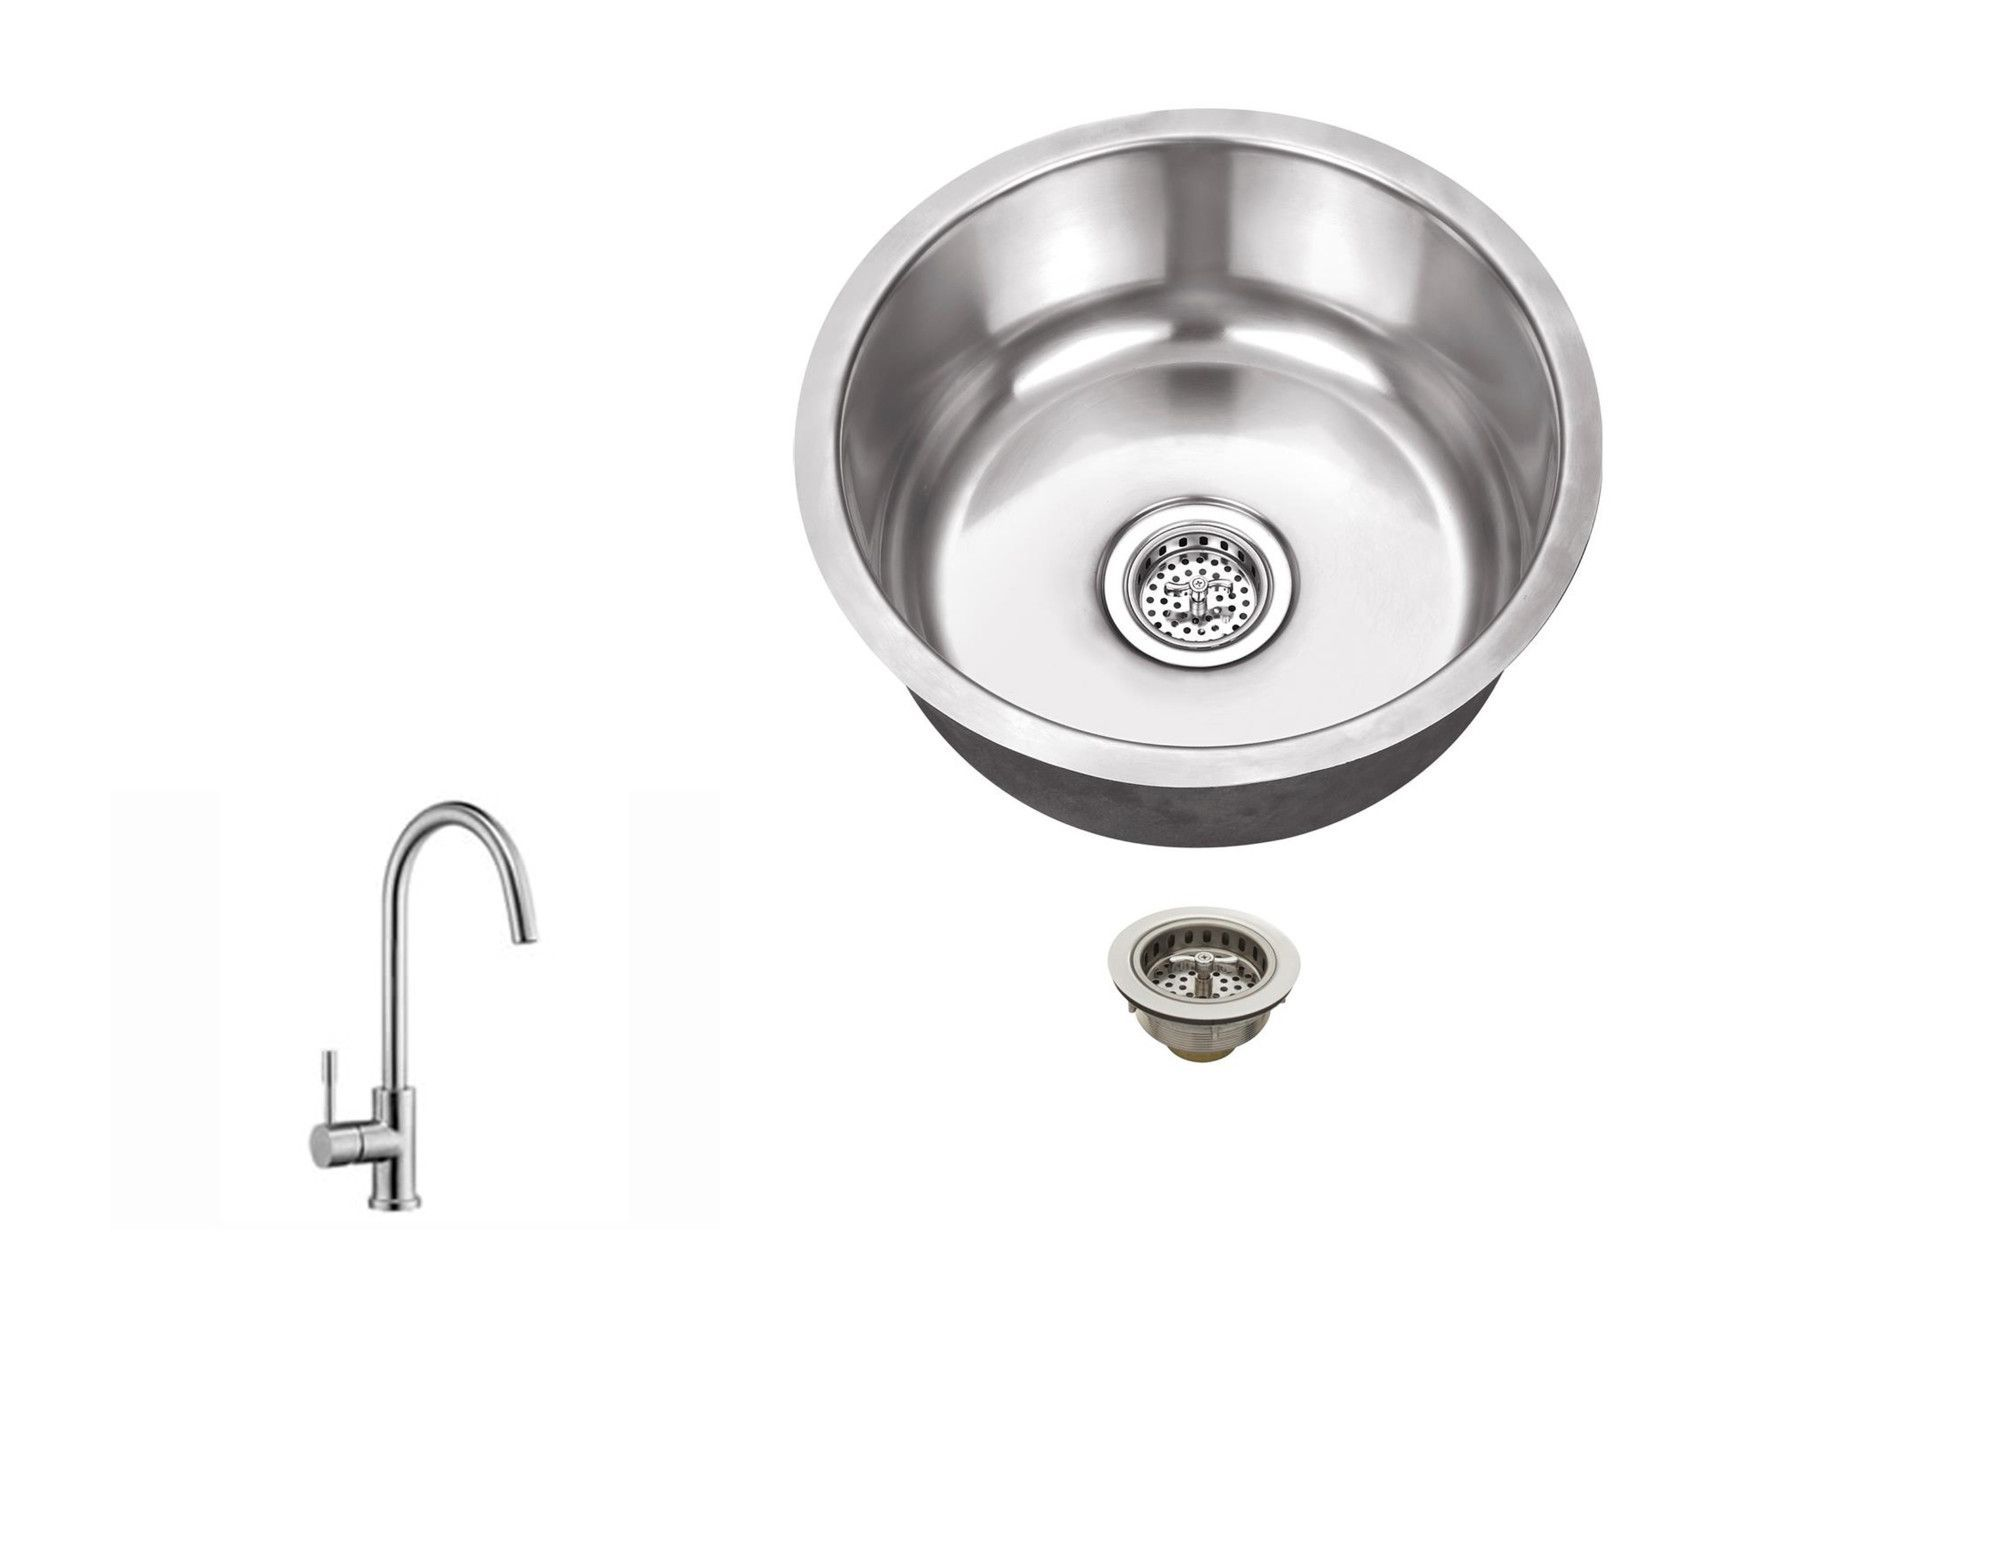 "17.13"" X 17.13"" 18 Gauge Single Bowl Round Bar Sink with Faucet"